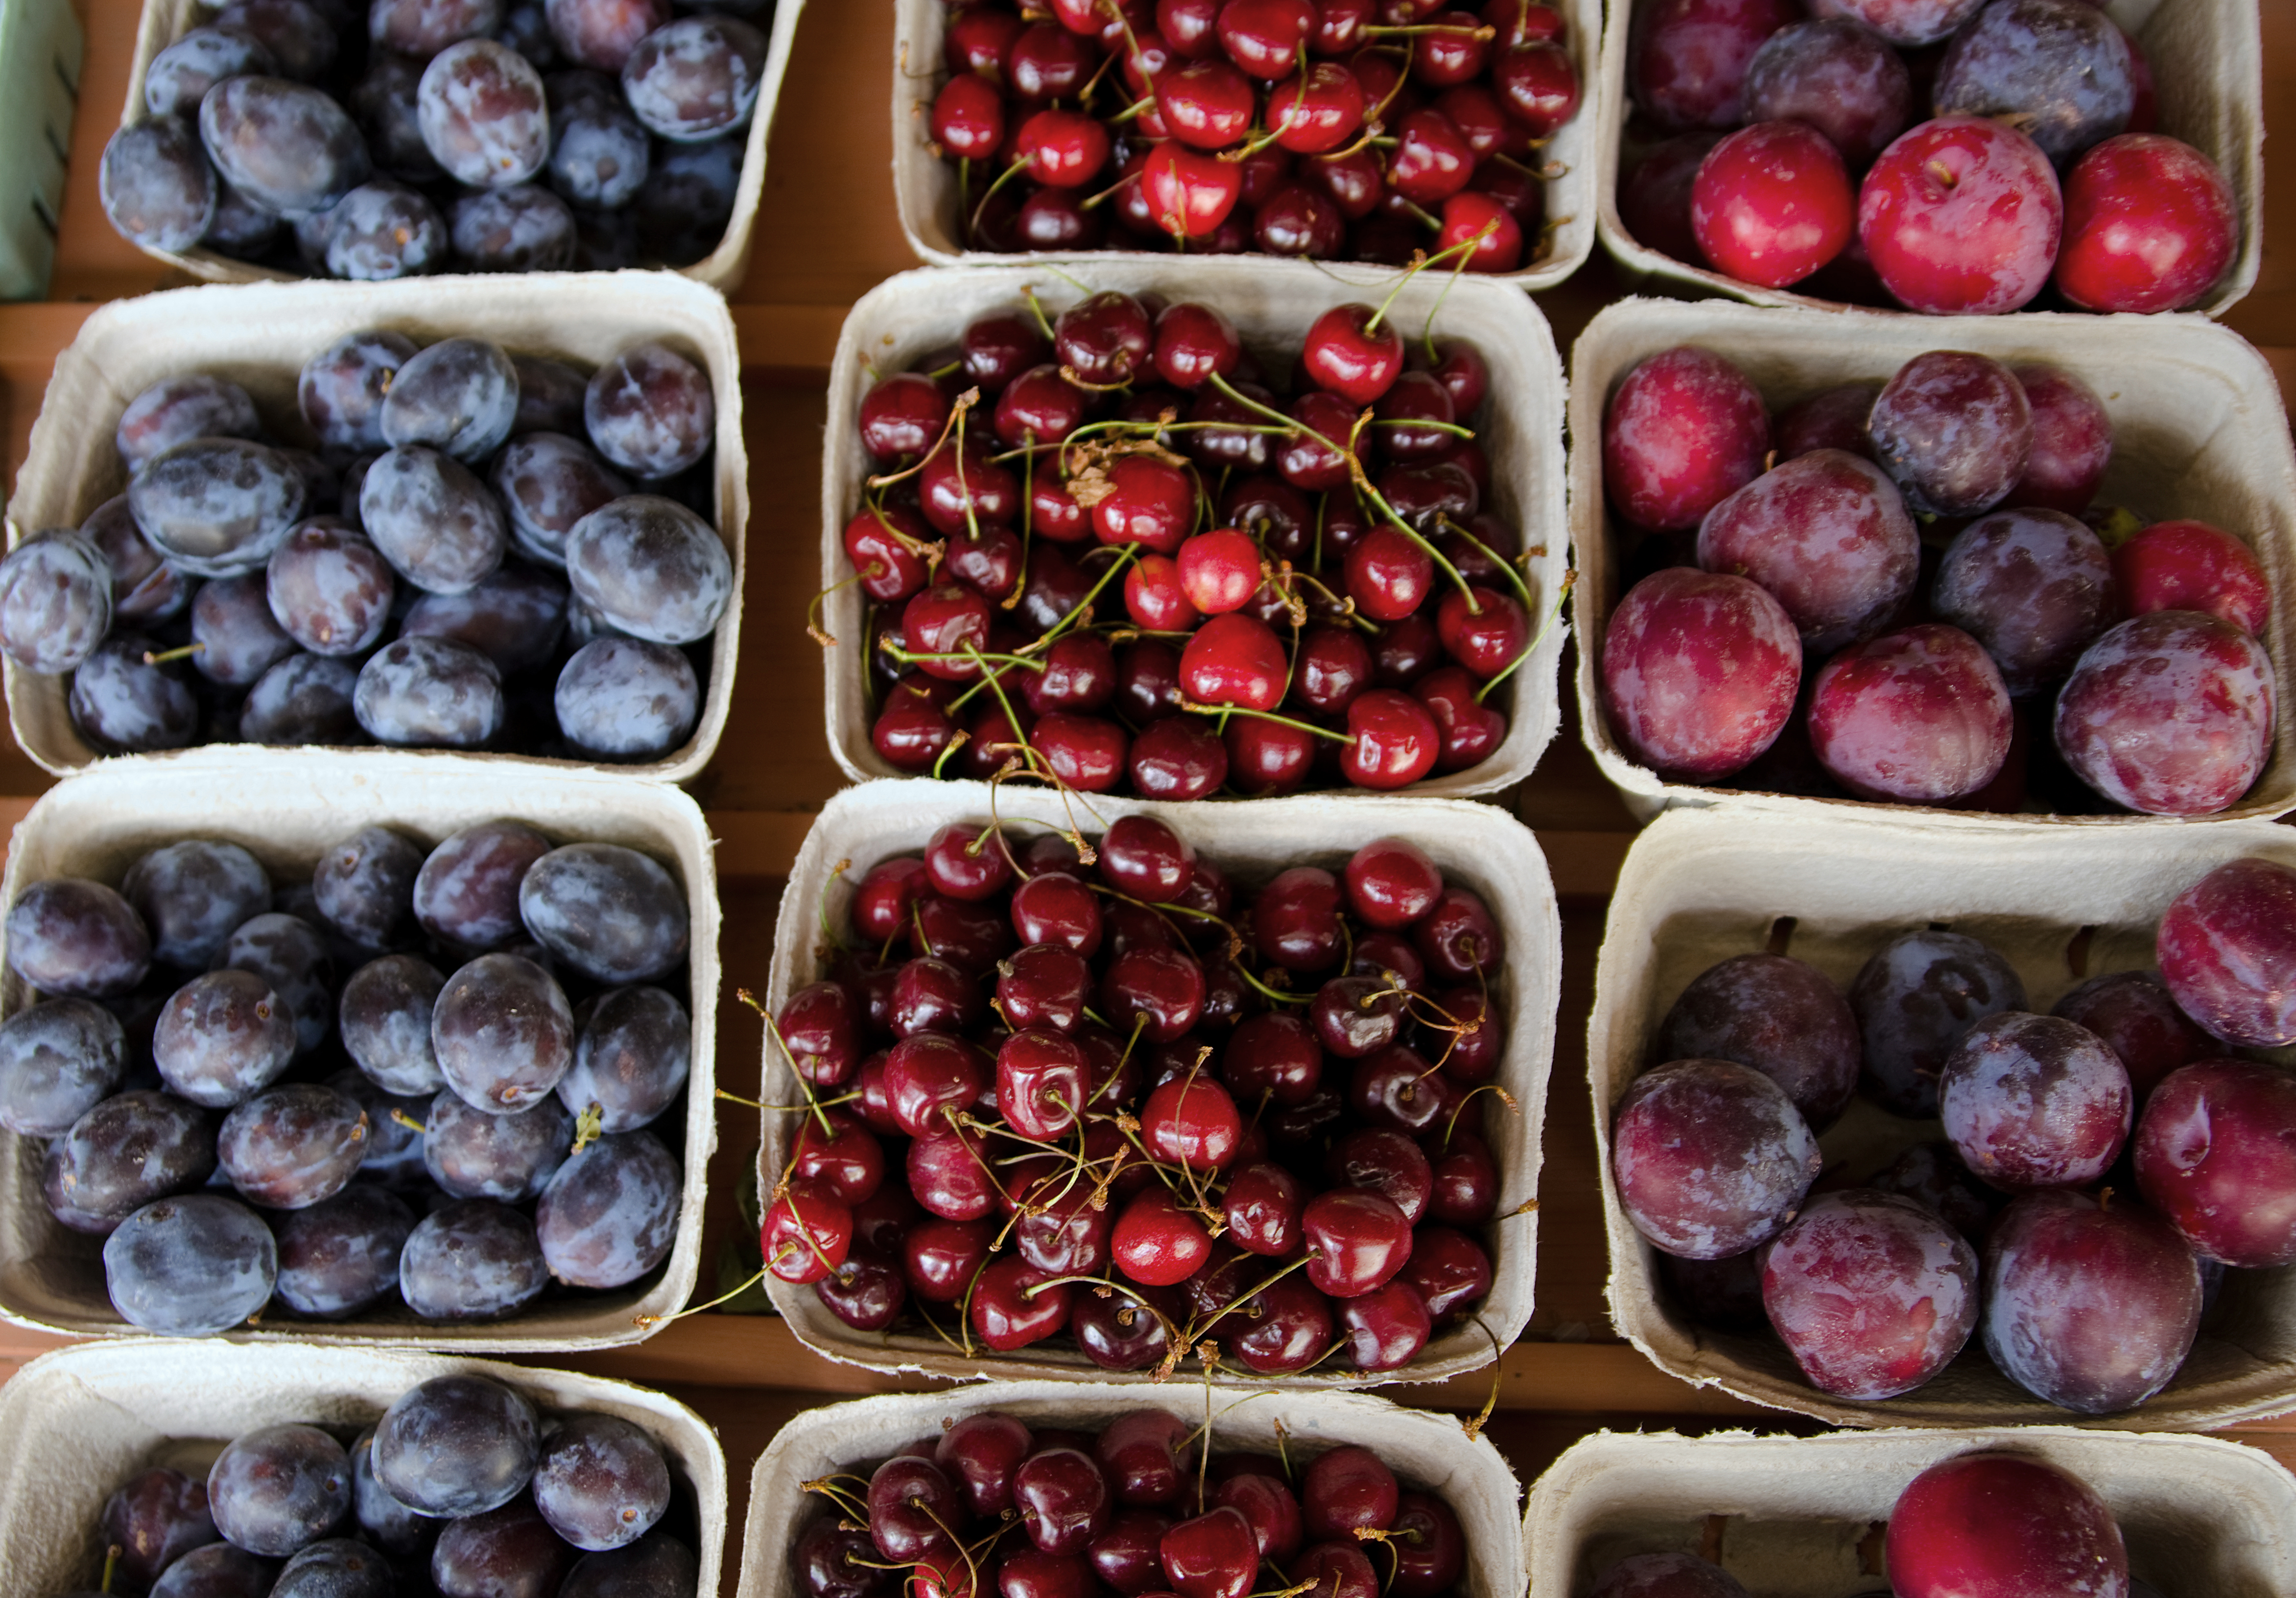 Bear's Fruit Stand in the Similkameen